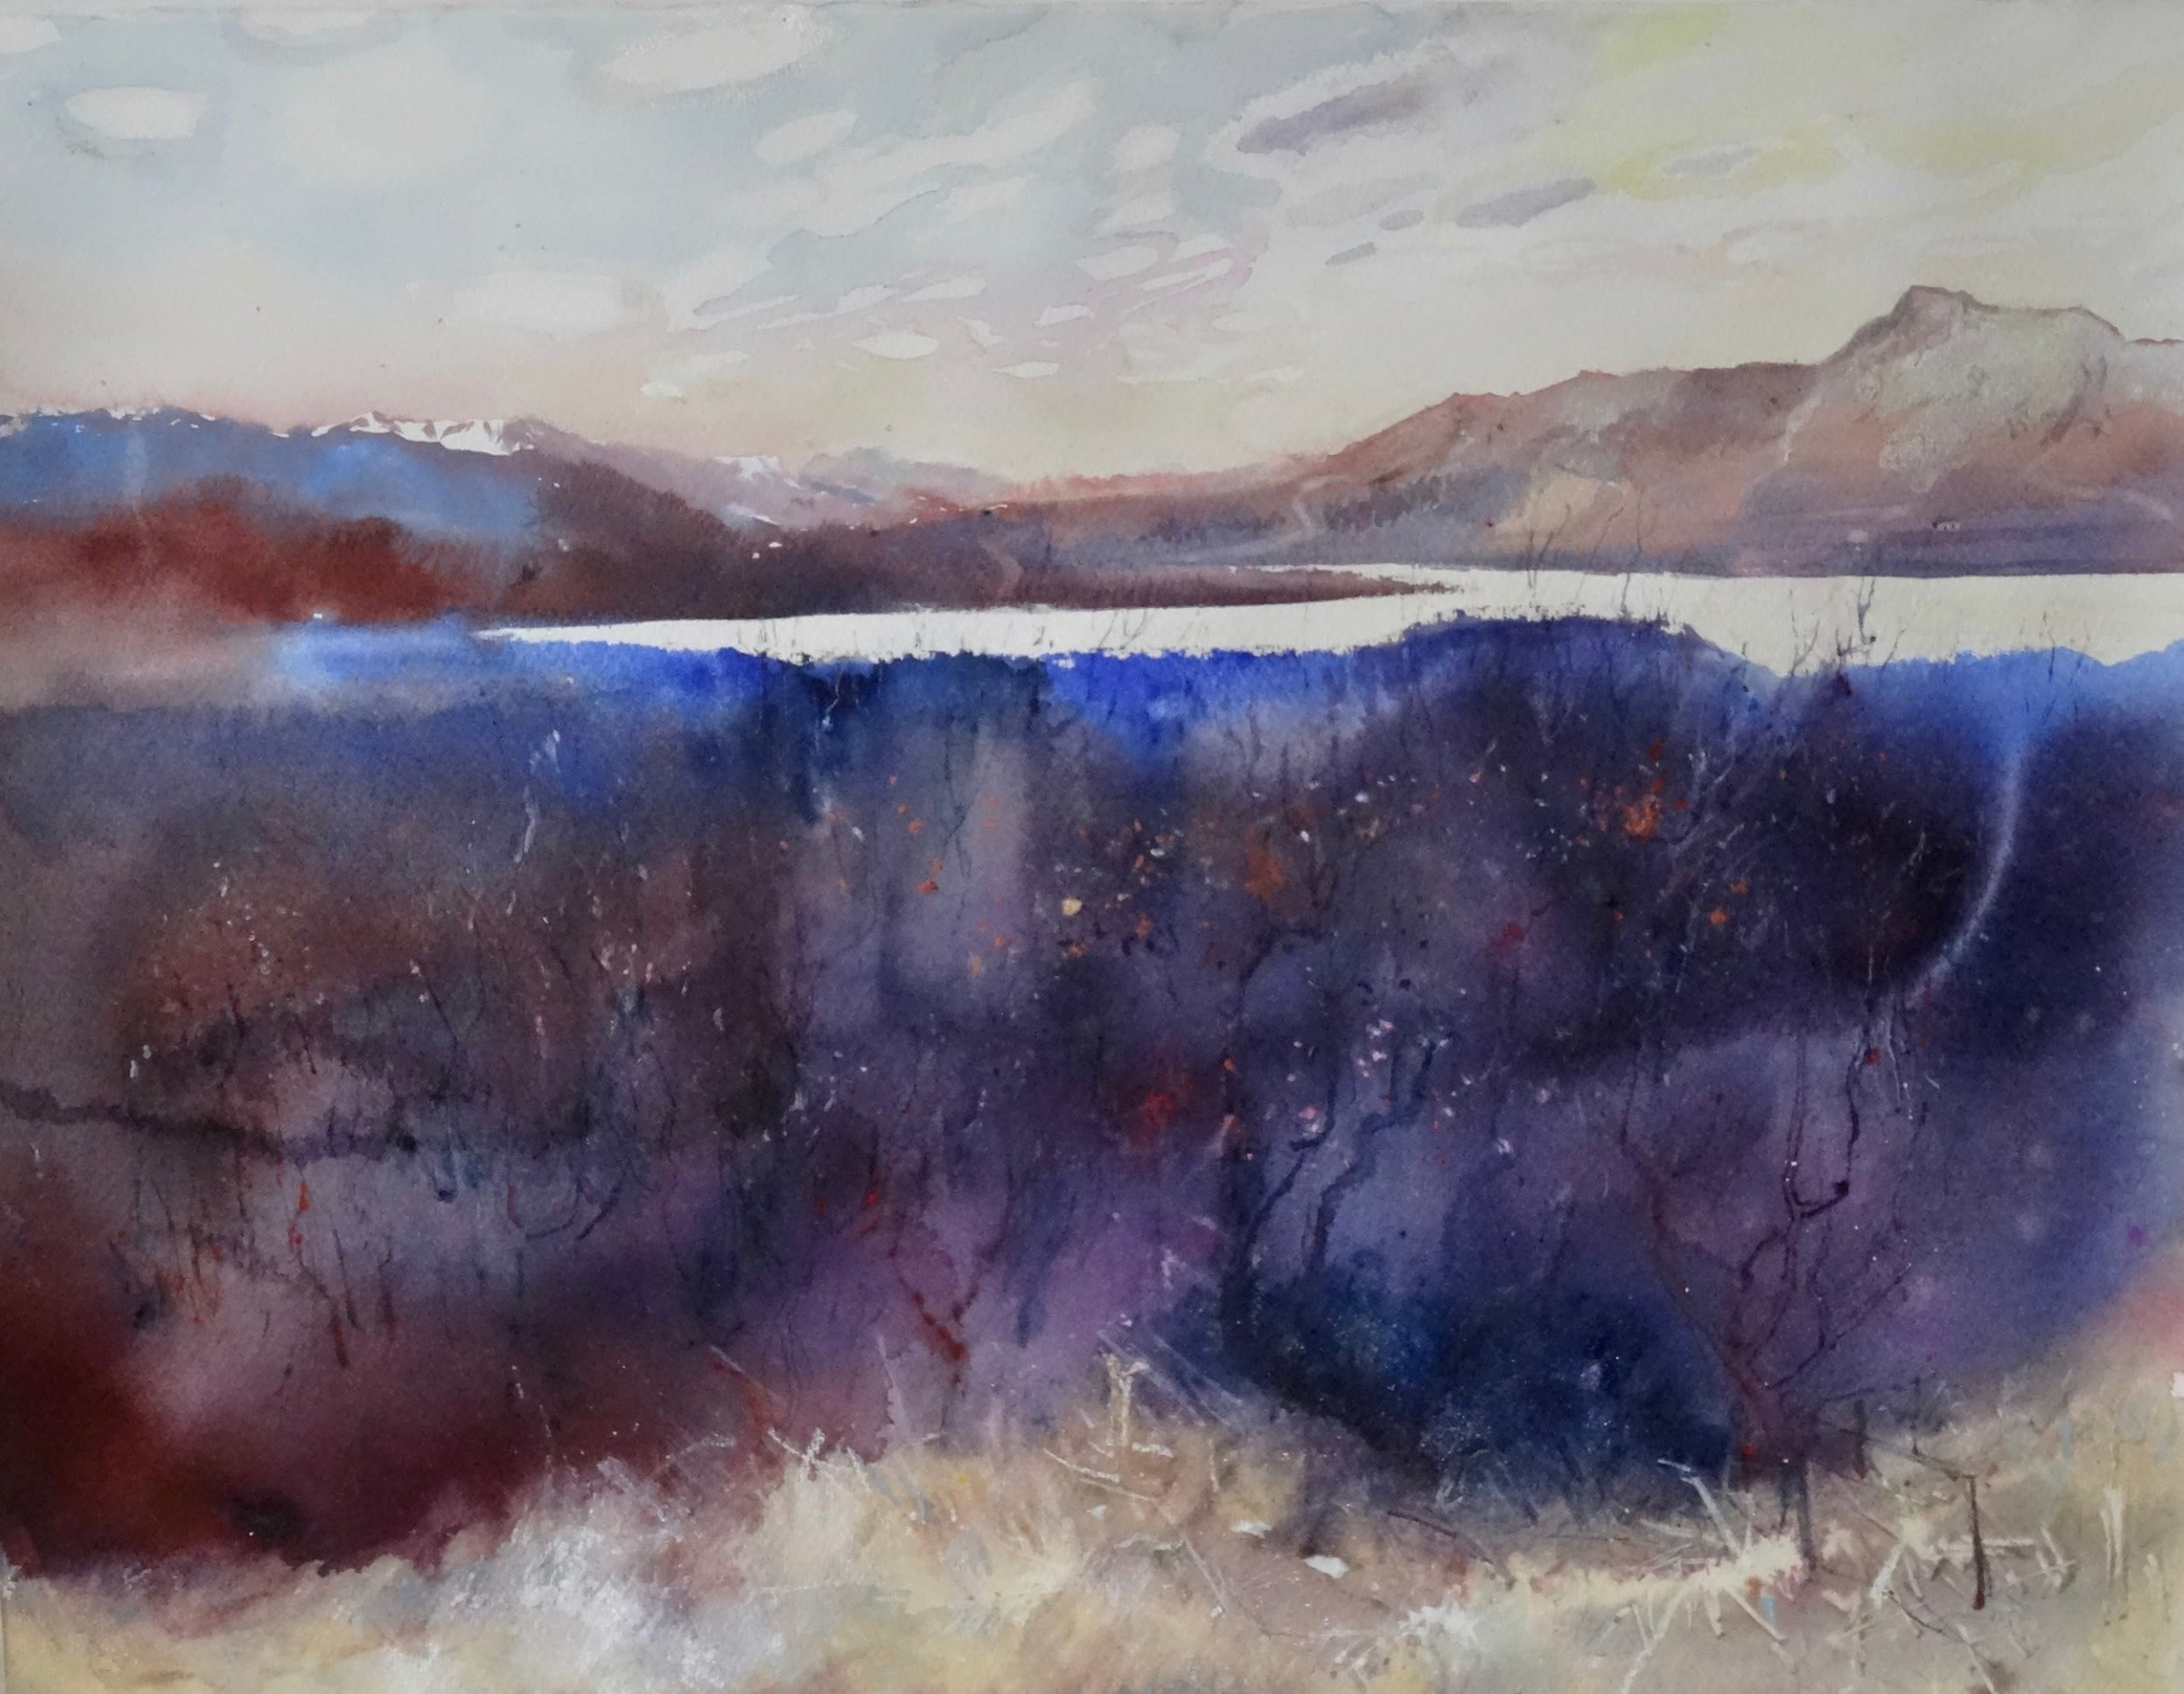 """<span class=""""link fancybox-details-link""""><a href=""""/artists/77-sophie-knight/works/12756-sophie-knight-sunlight-on-the-loch-isle-of-skye/"""">View Detail Page</a></span><div class=""""artist""""><span class=""""artist""""><strong>Sophie Knight</strong></span></div><div class=""""title""""><em>Sunlight on the Loch, Isle of Skye</em></div><div class=""""medium"""">mixed media in paper</div><div class=""""dimensions"""">Frame: 88 x 66cm<br /> Artwork: 76 x 56cm</div><div class=""""price"""">£1,500.00</div>"""